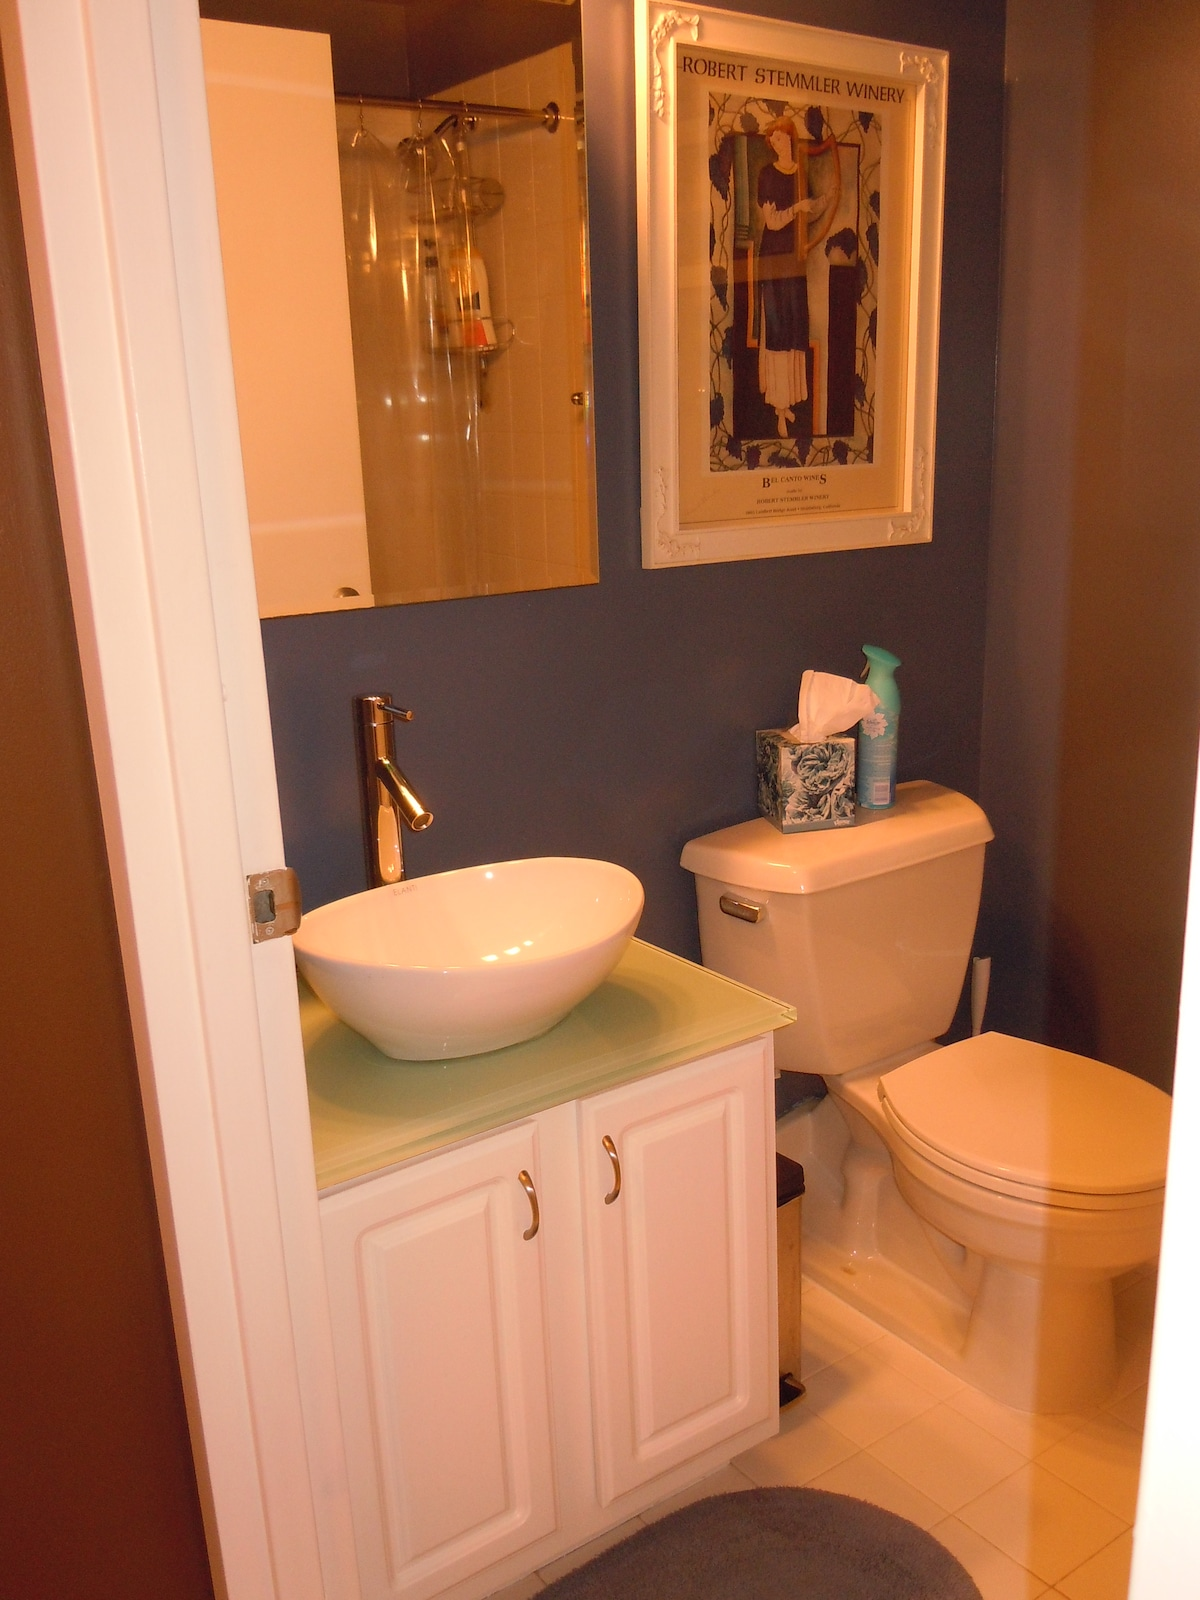 This is your private bathroom.